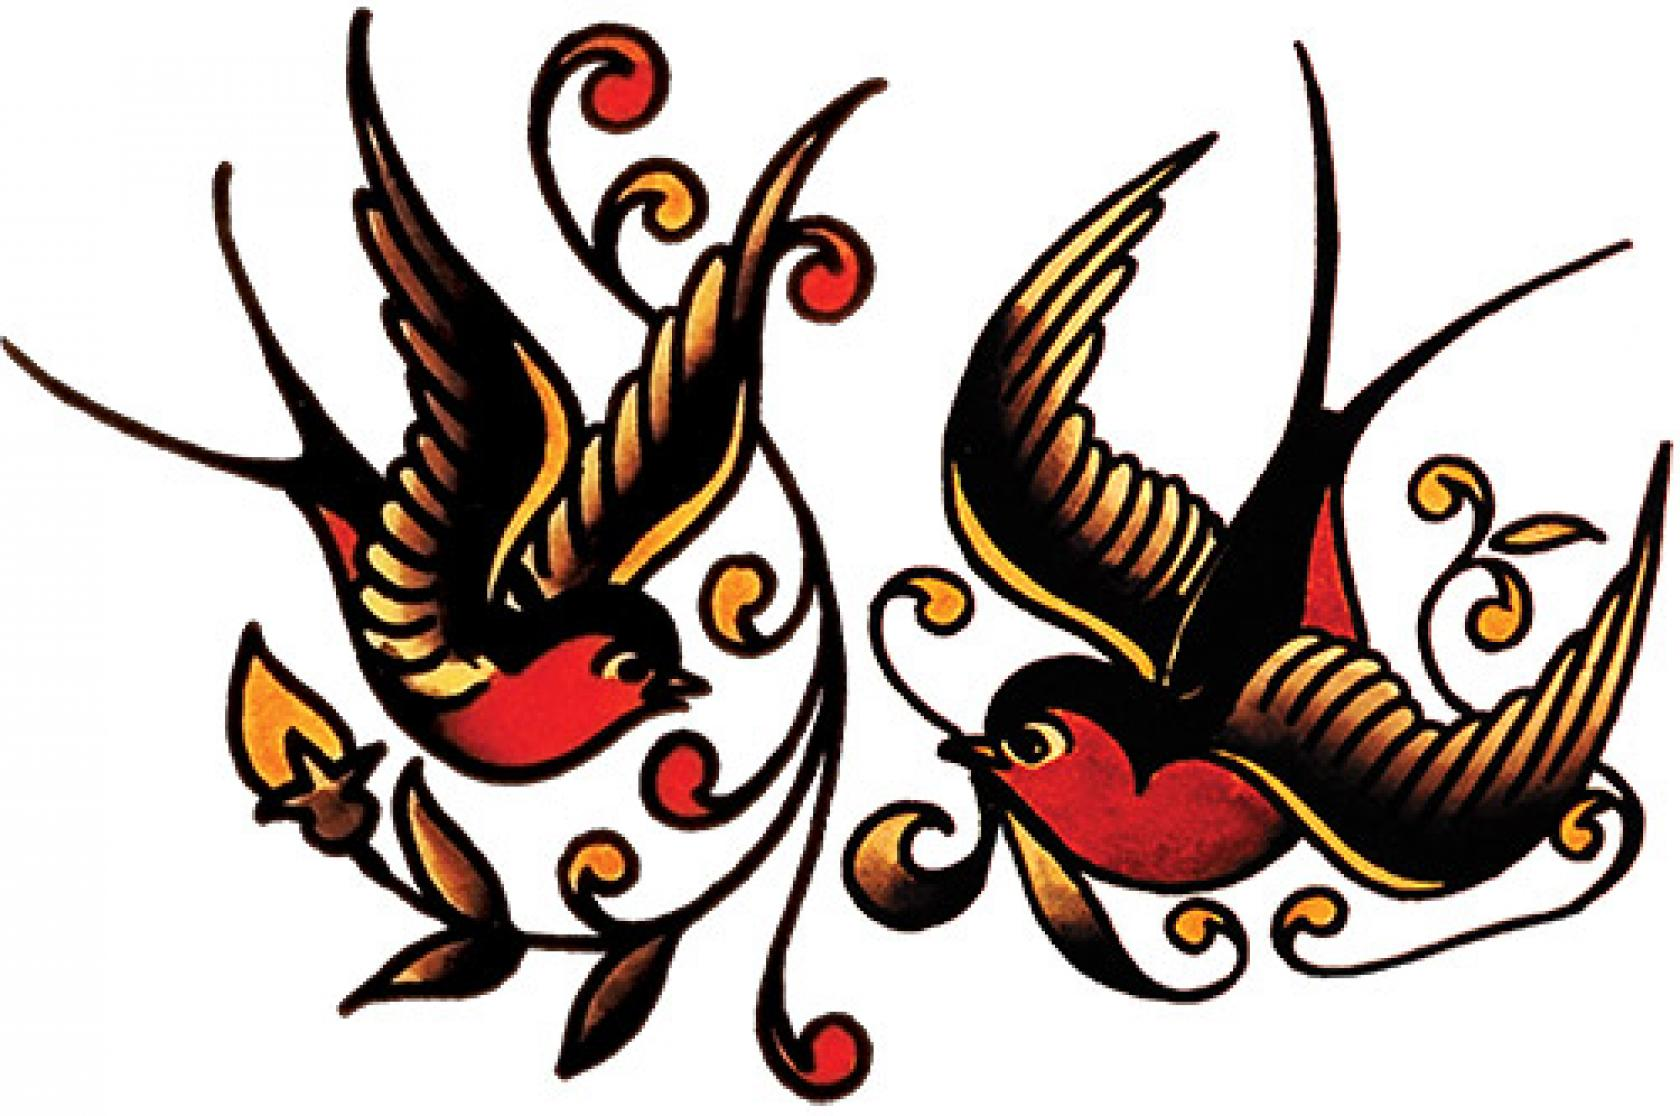 sailor-jerry-swallow-tattoo-design.jpg